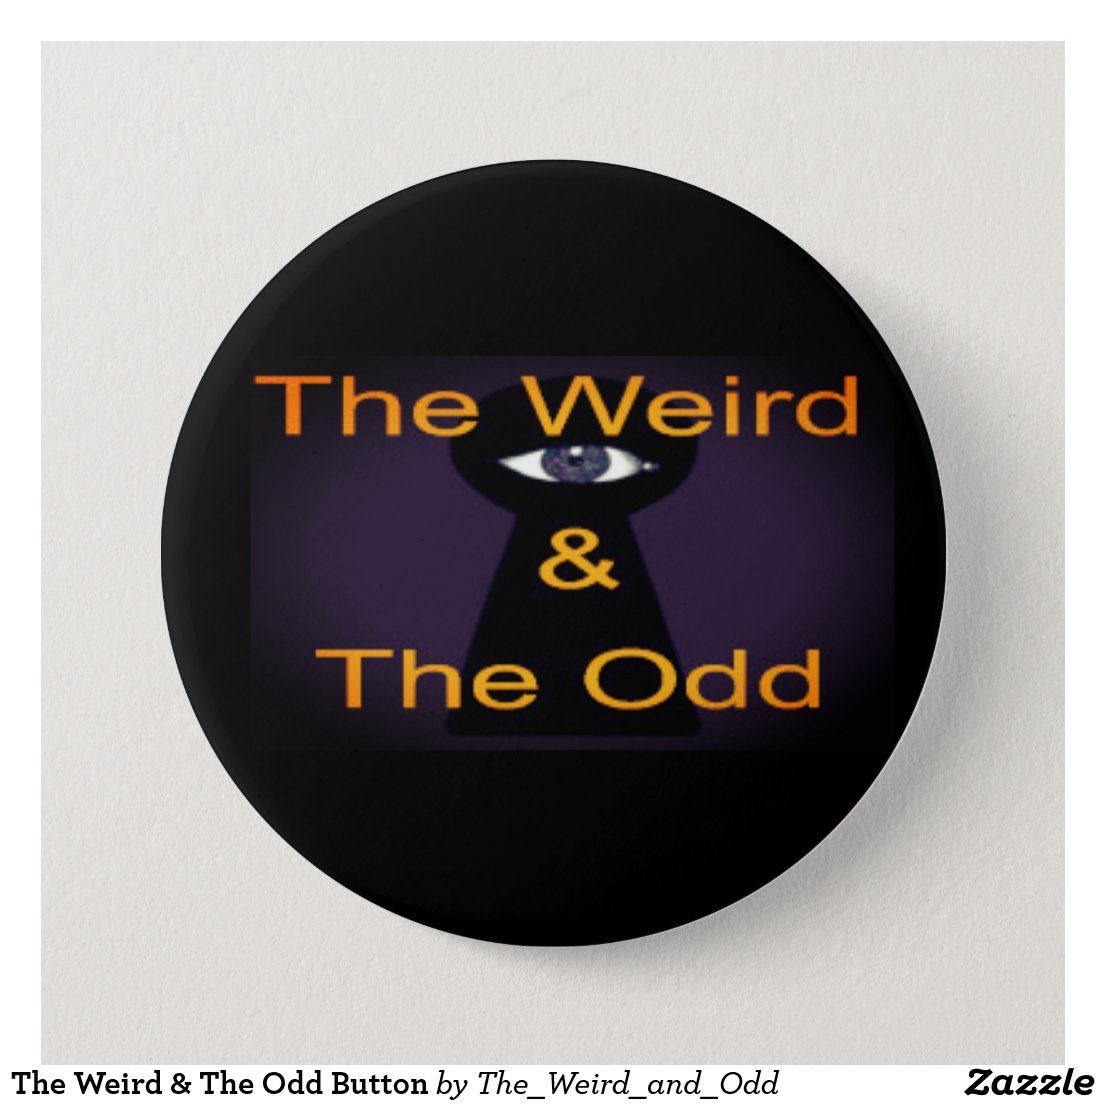 The Weird & The Odd Button